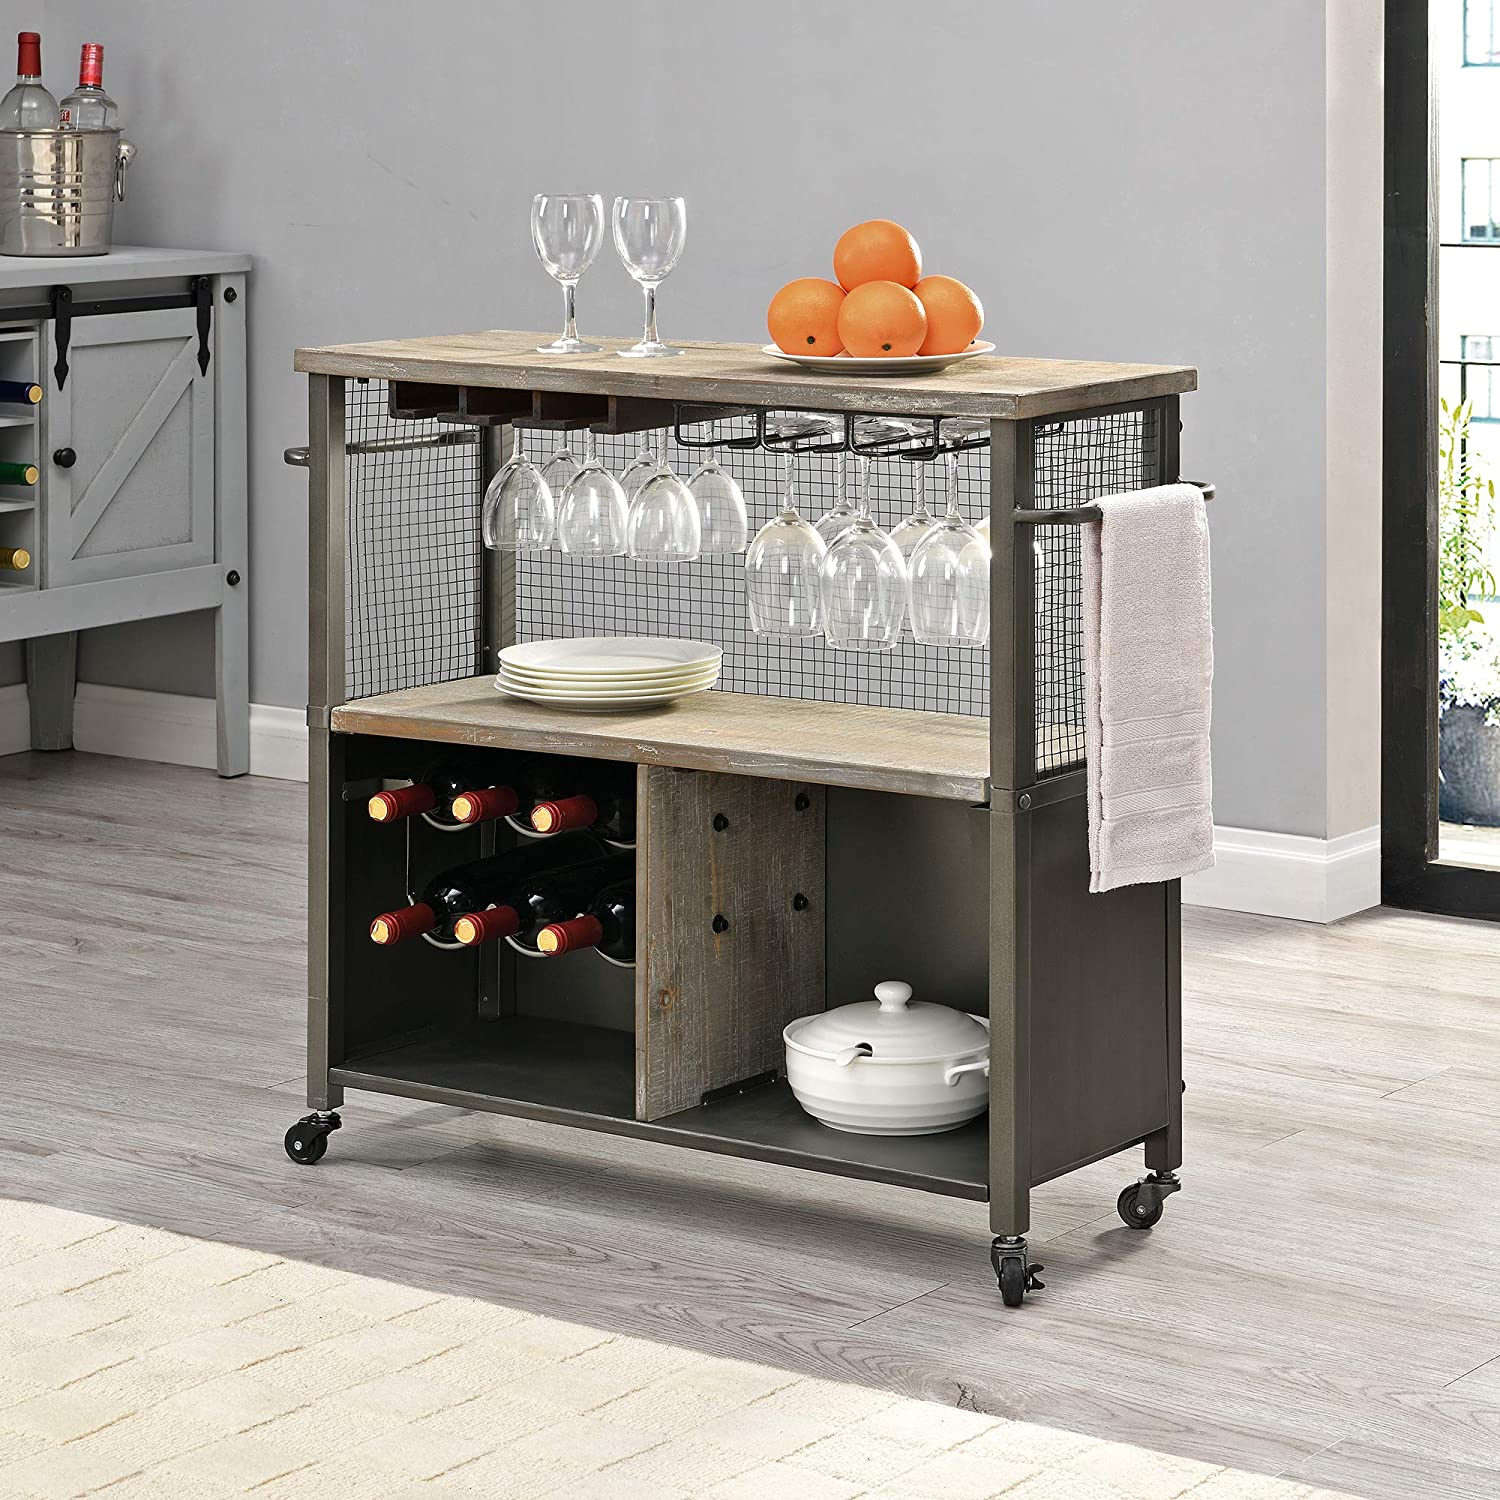 FirsTime & Co. Silver Chandler Farmhouse Kitchen Cart, American Designed, Silver, 31.5 x 12 x 31.5 inches (70251)